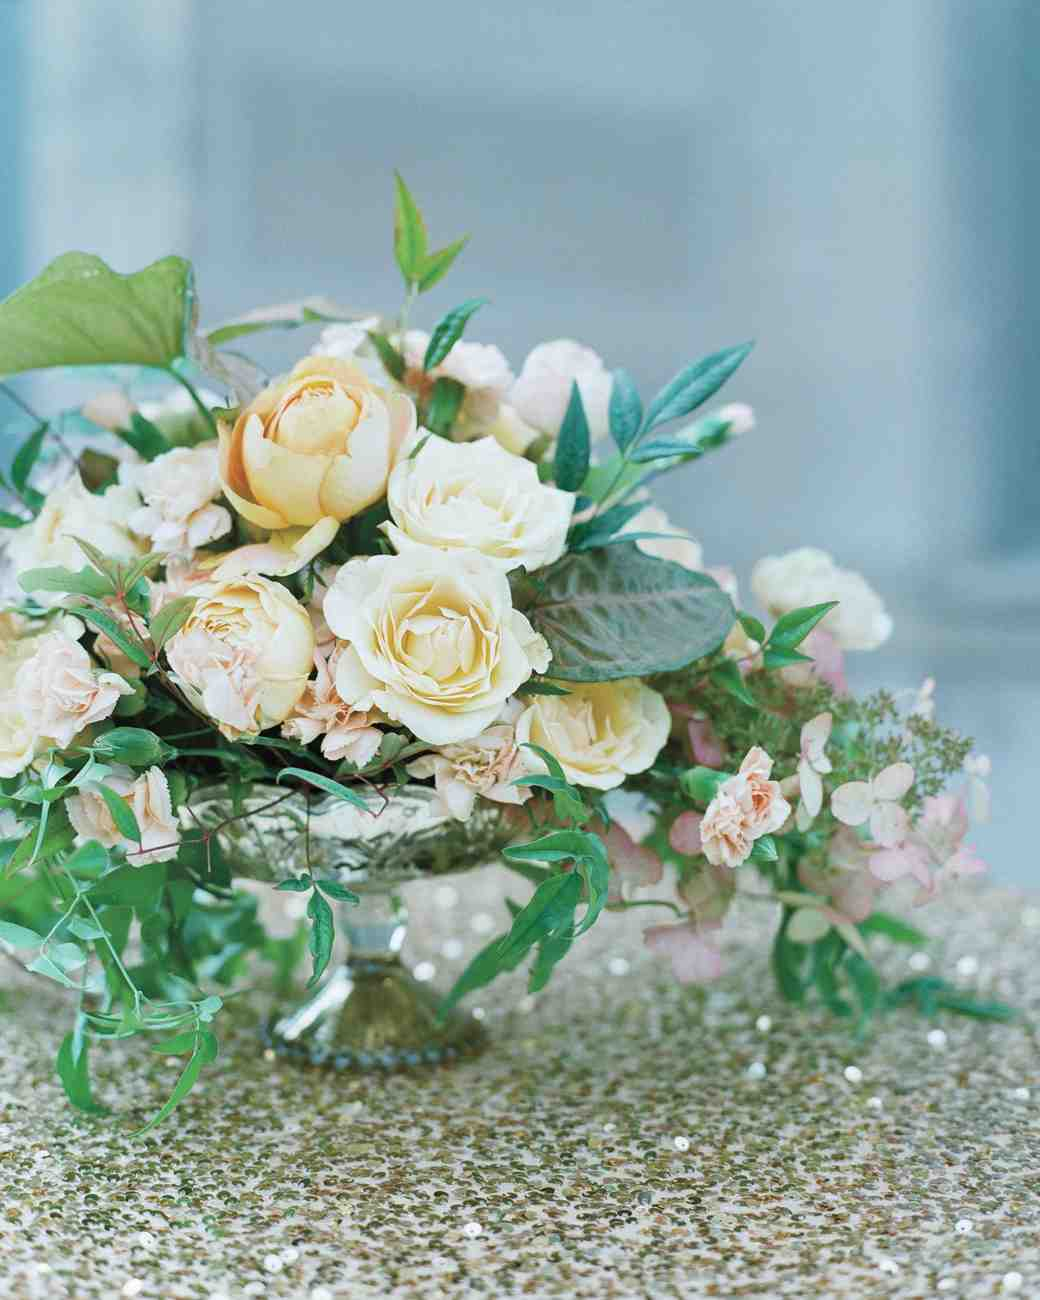 adrienne-jason-real-wedding-floral-centerpieces.jpg